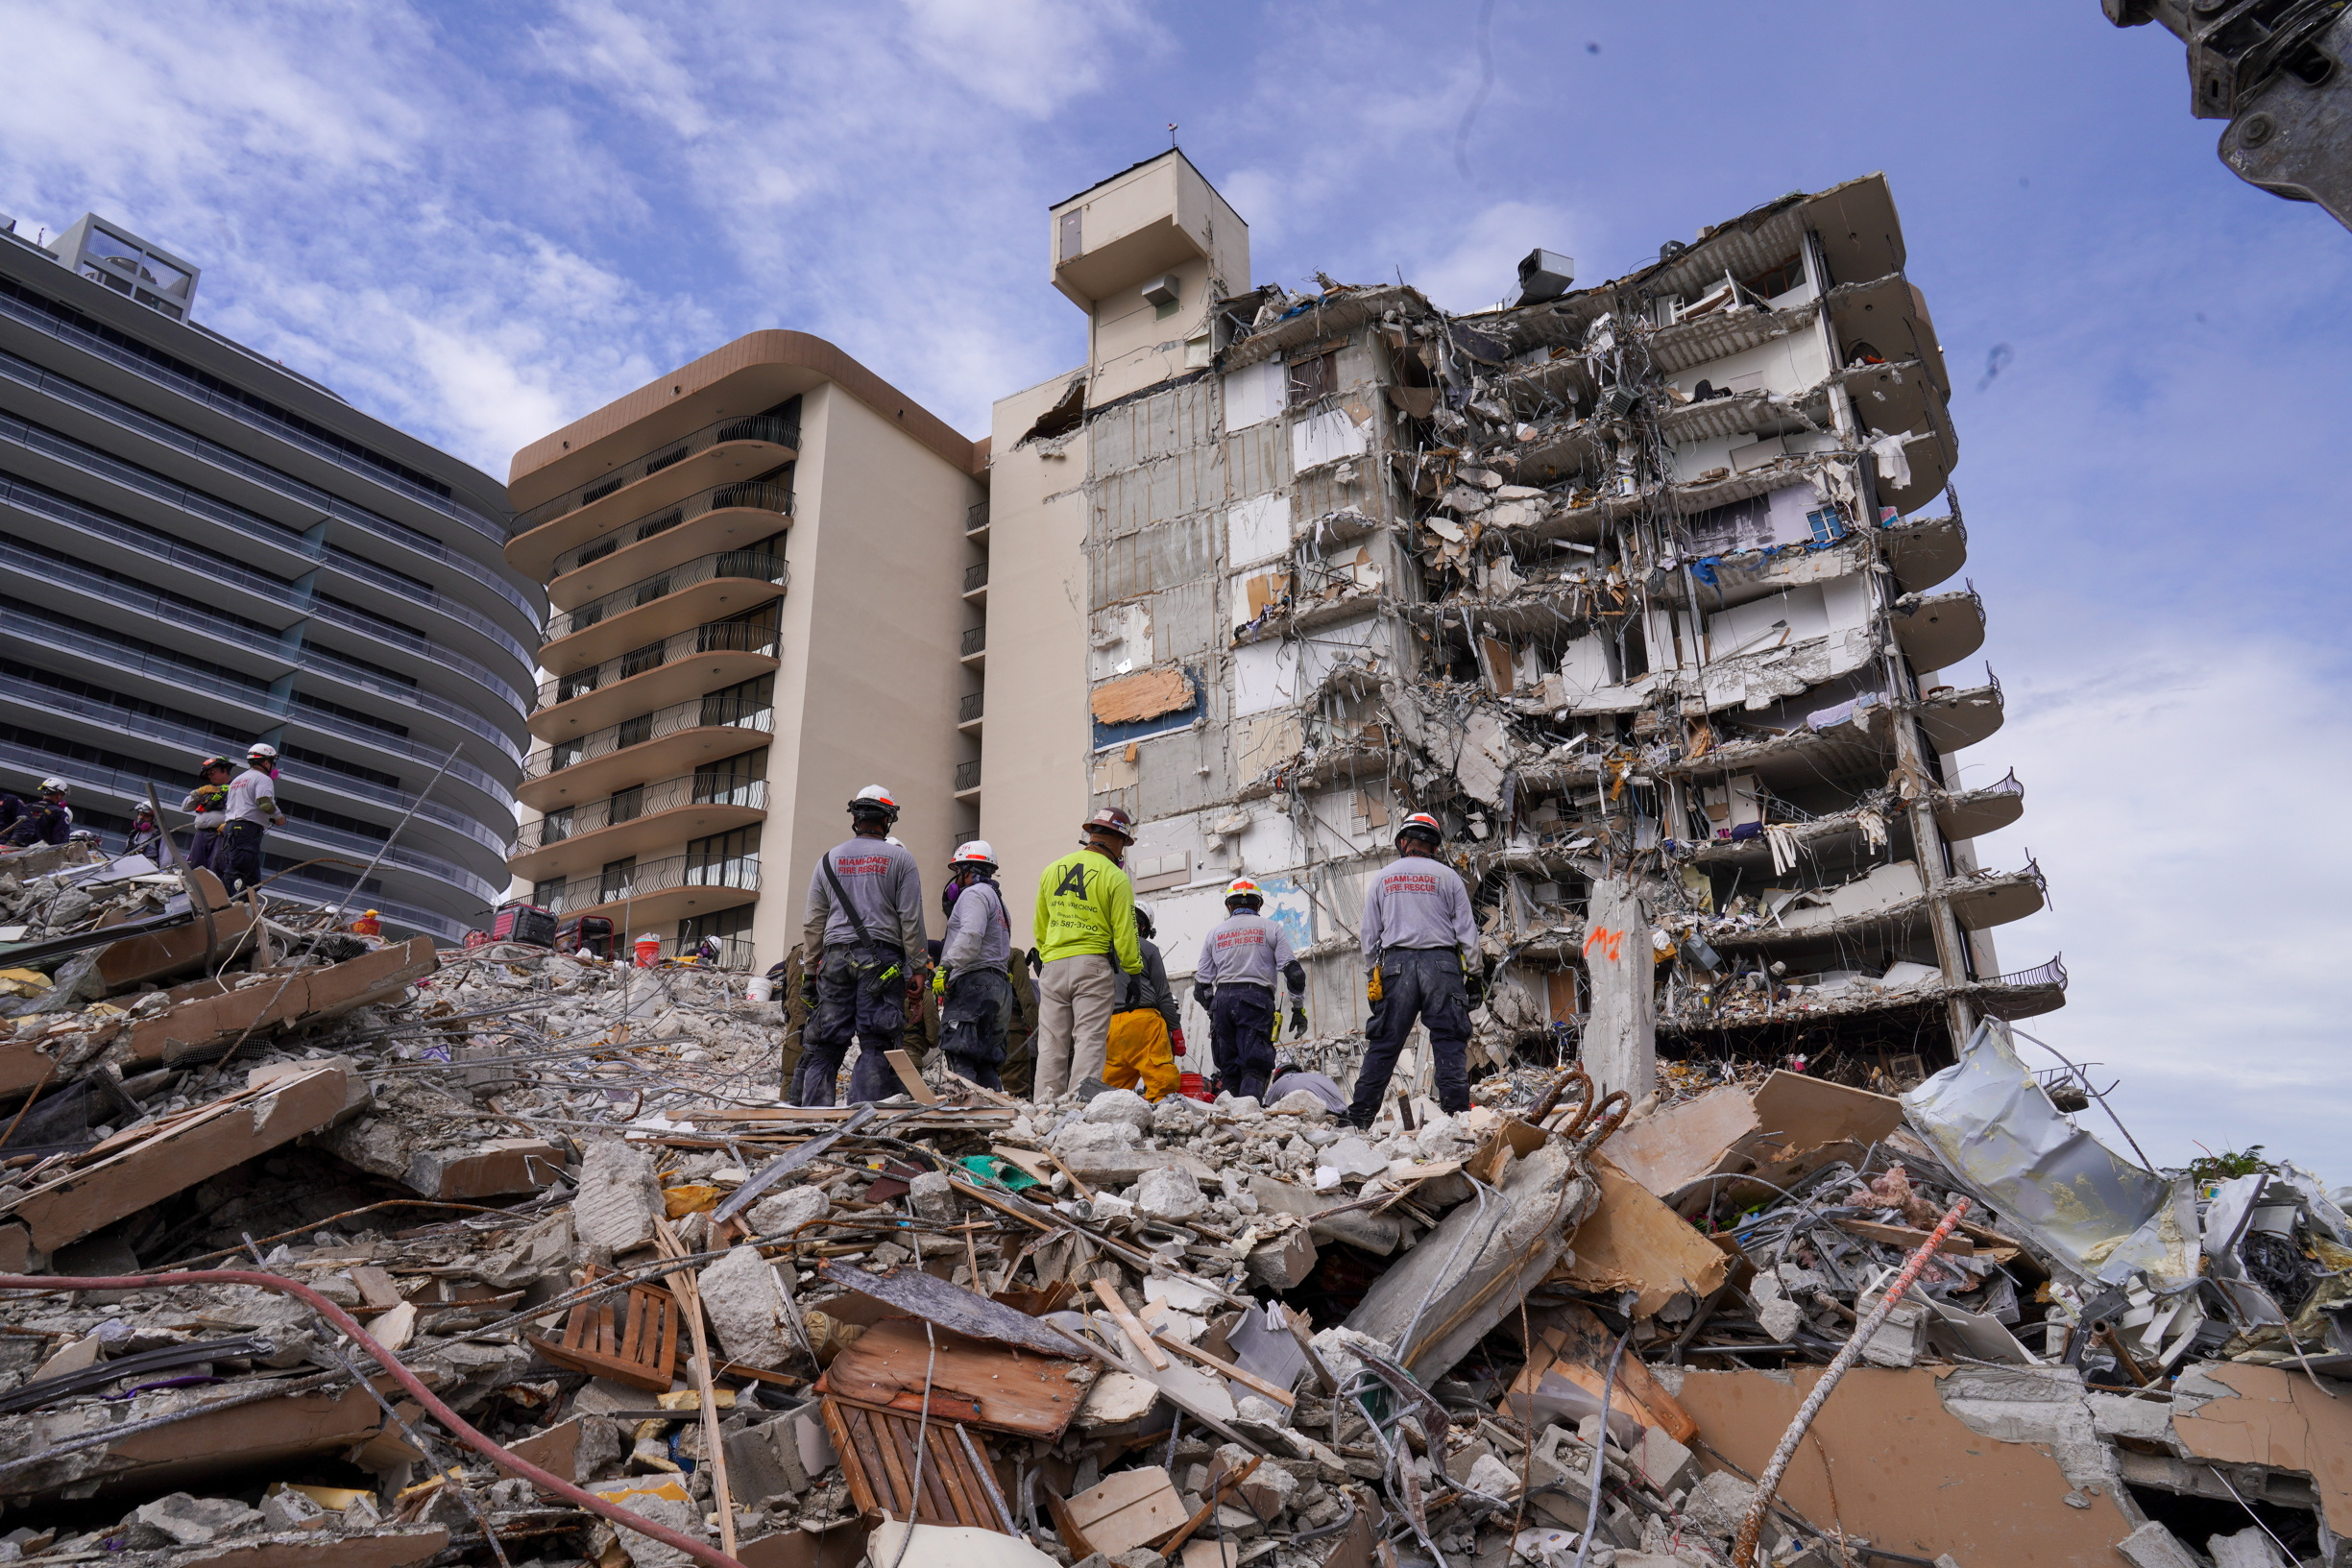 Search and rescue personnel work at the site of a collapsed Florida condominium complex in Surfside, Miami, U.S., in this handout image July 2, 2021. MIAMI DADE FIRE DEPARTMENT/Handout via REUTERS